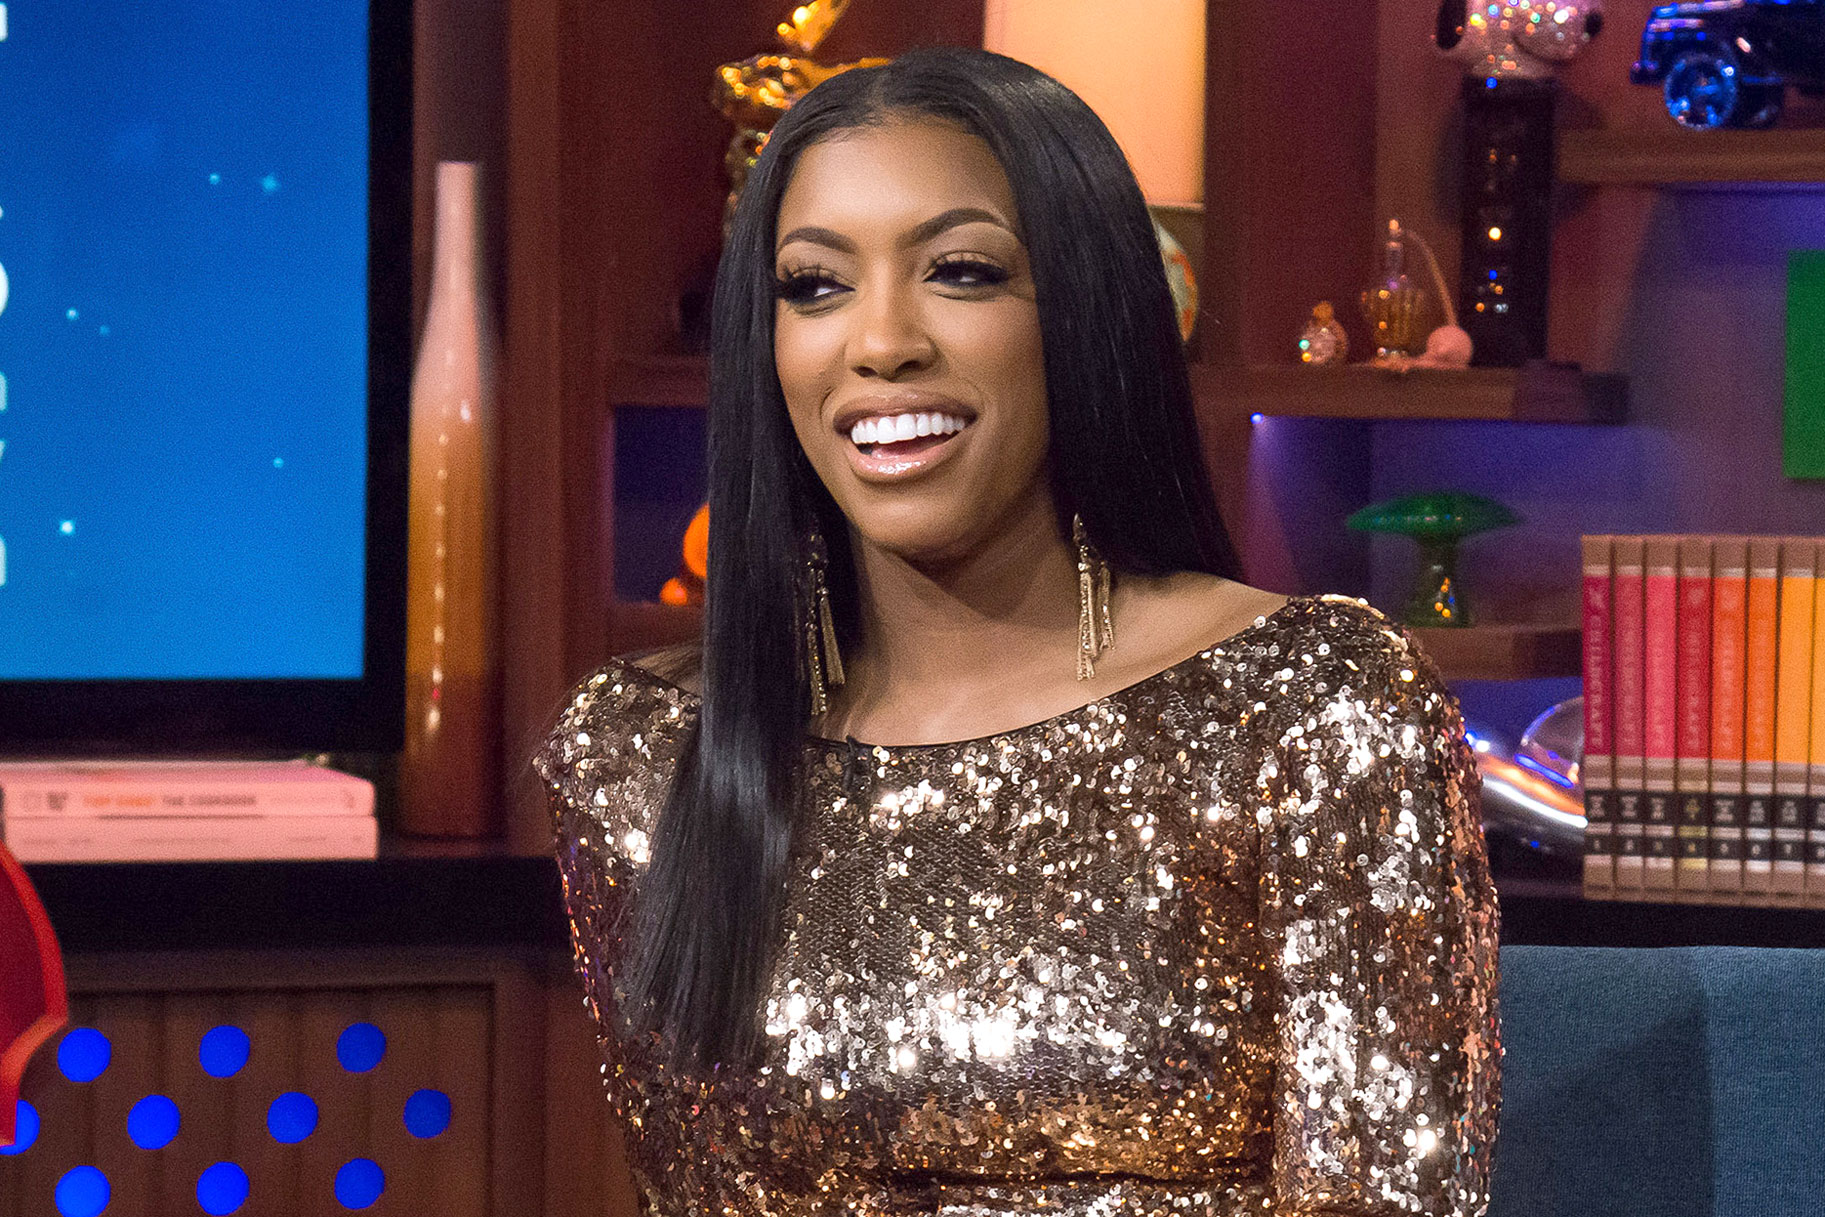 Porsha Williams Invites Fans To Start The Year Fresh With Her New Merch - See The New Products Here